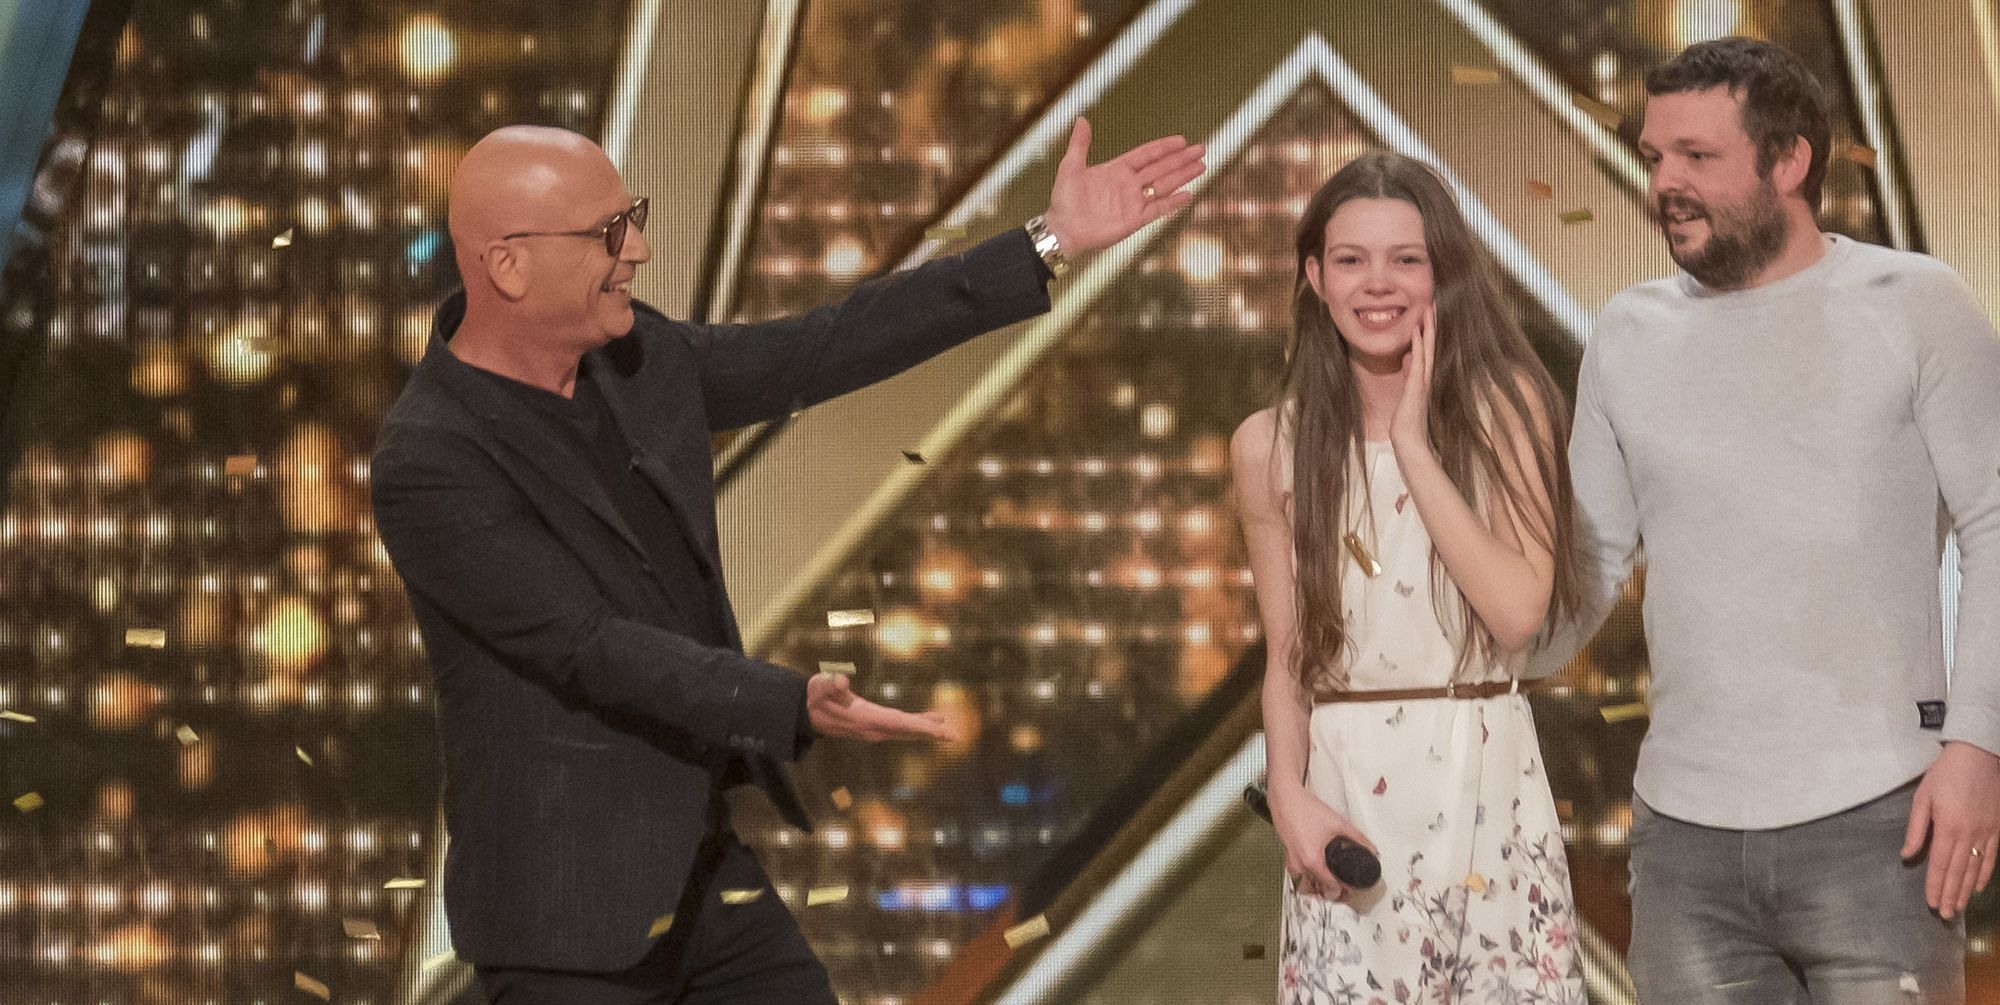 Courtney Hadwin on 'America's Got Talent'